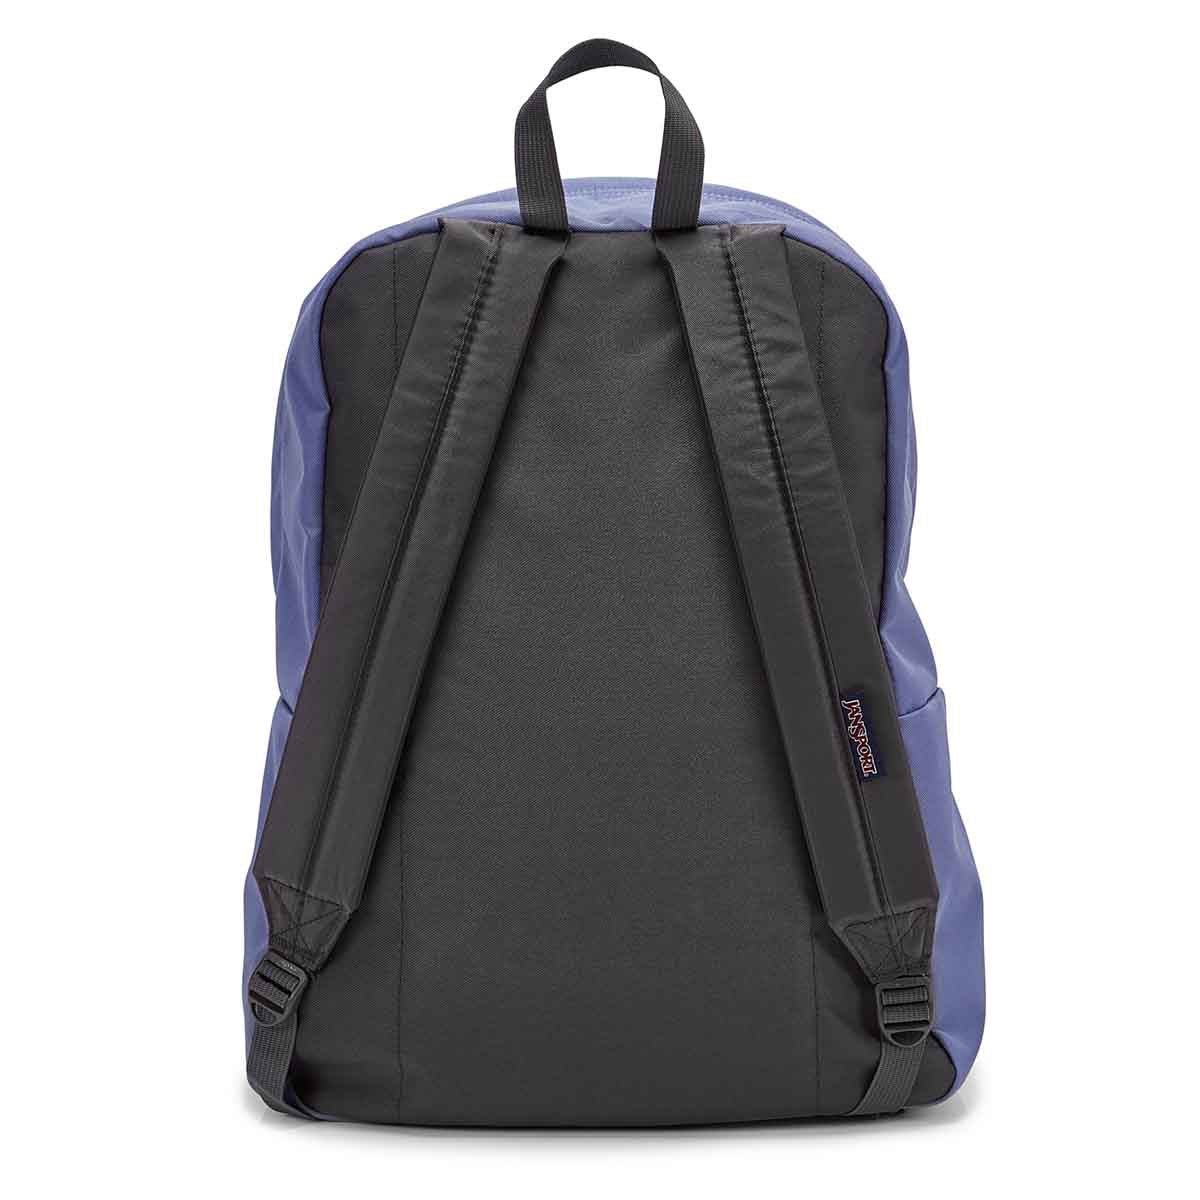 Jansport Superbreak blchd dnm backpack